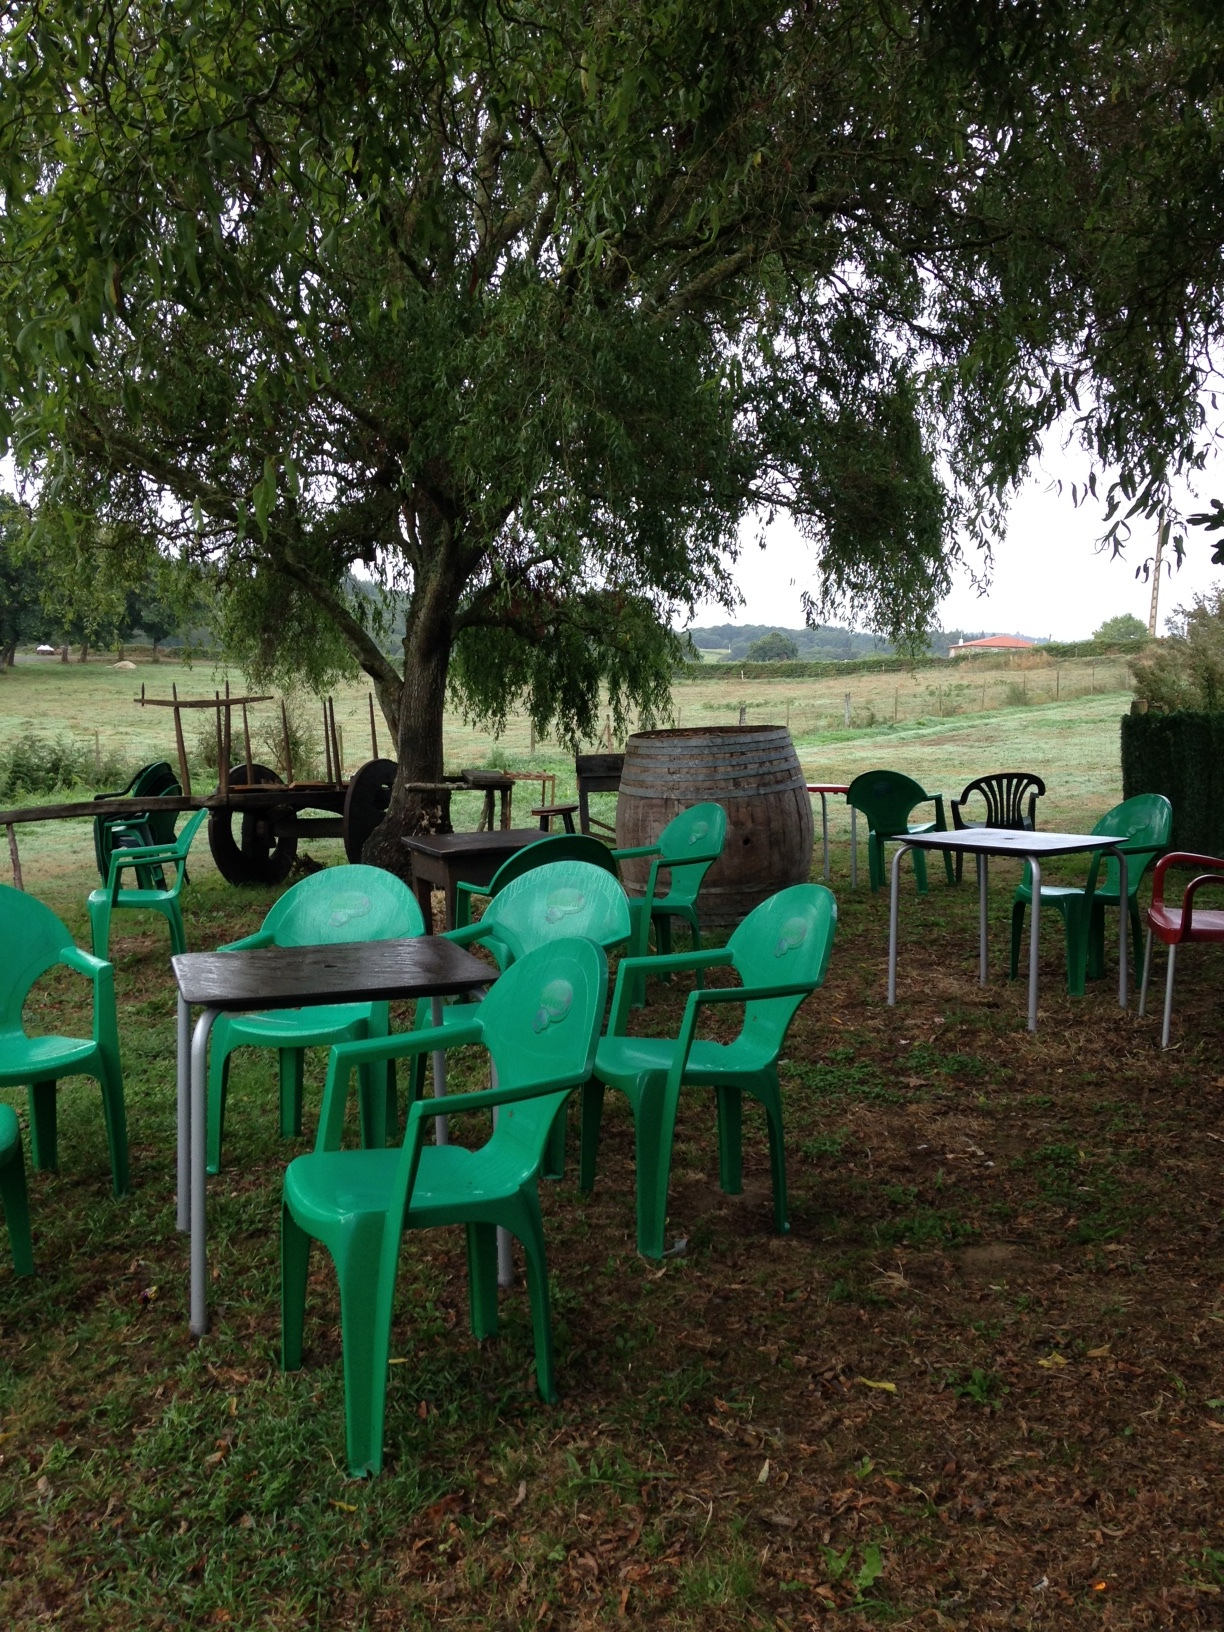 Unpredictable weather = empty cafe chairs.